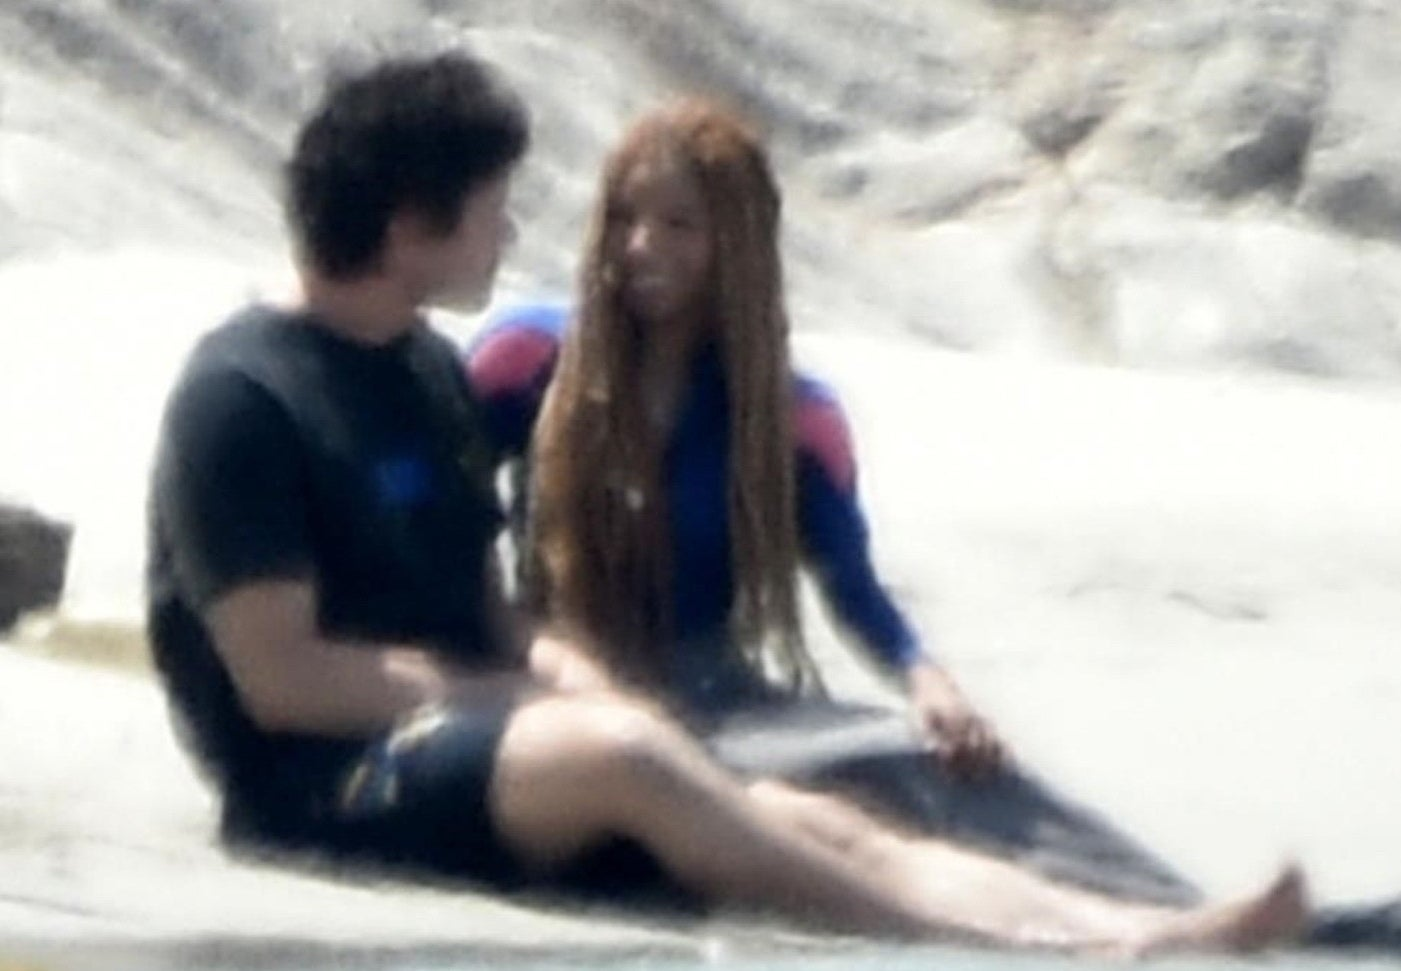 Close-up of them by the water; Halle is smiling